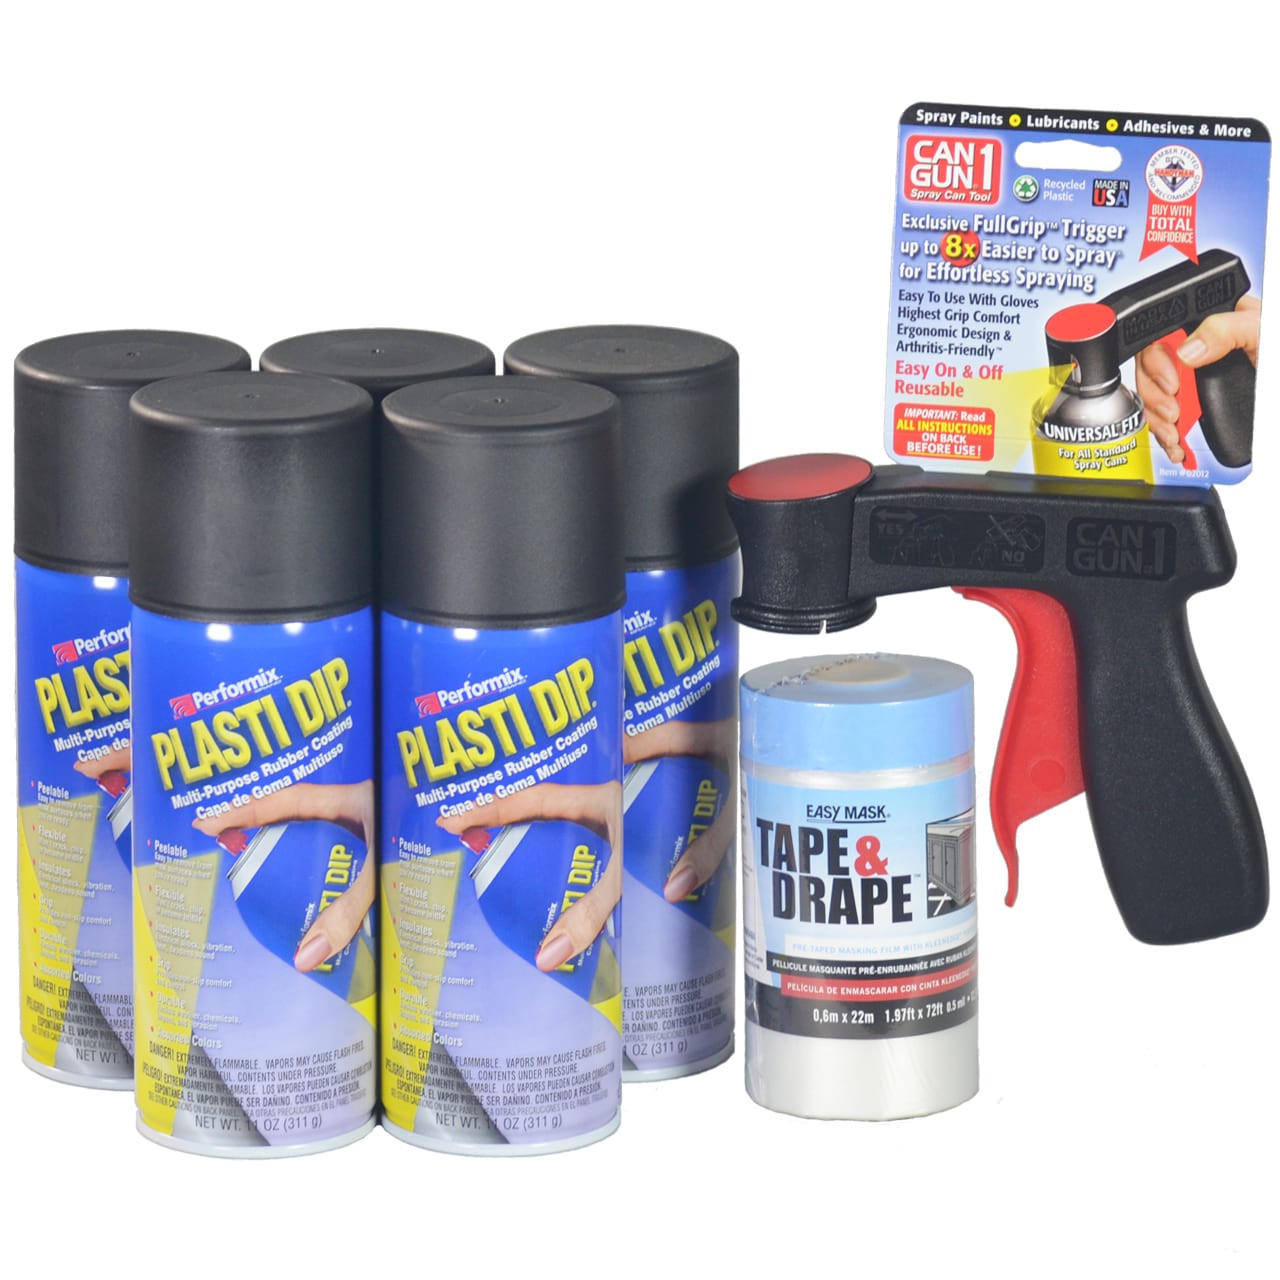 Plasti Dip Basic Rim Kit: 5 cans 11 oz Plasti Dip Spray, Black